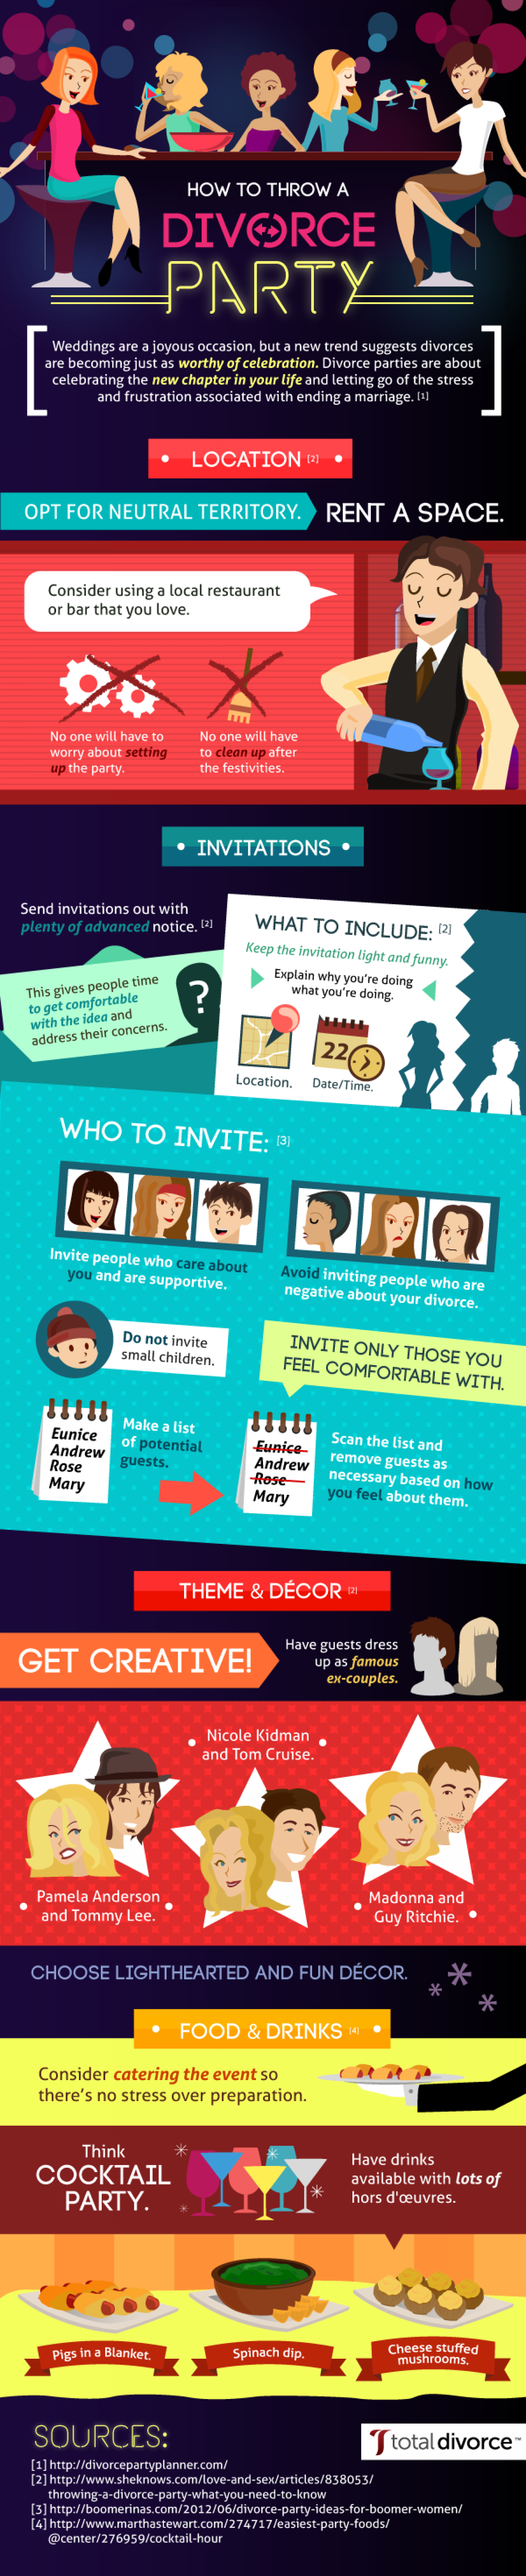 How to Throw A Divorce Party Infographic